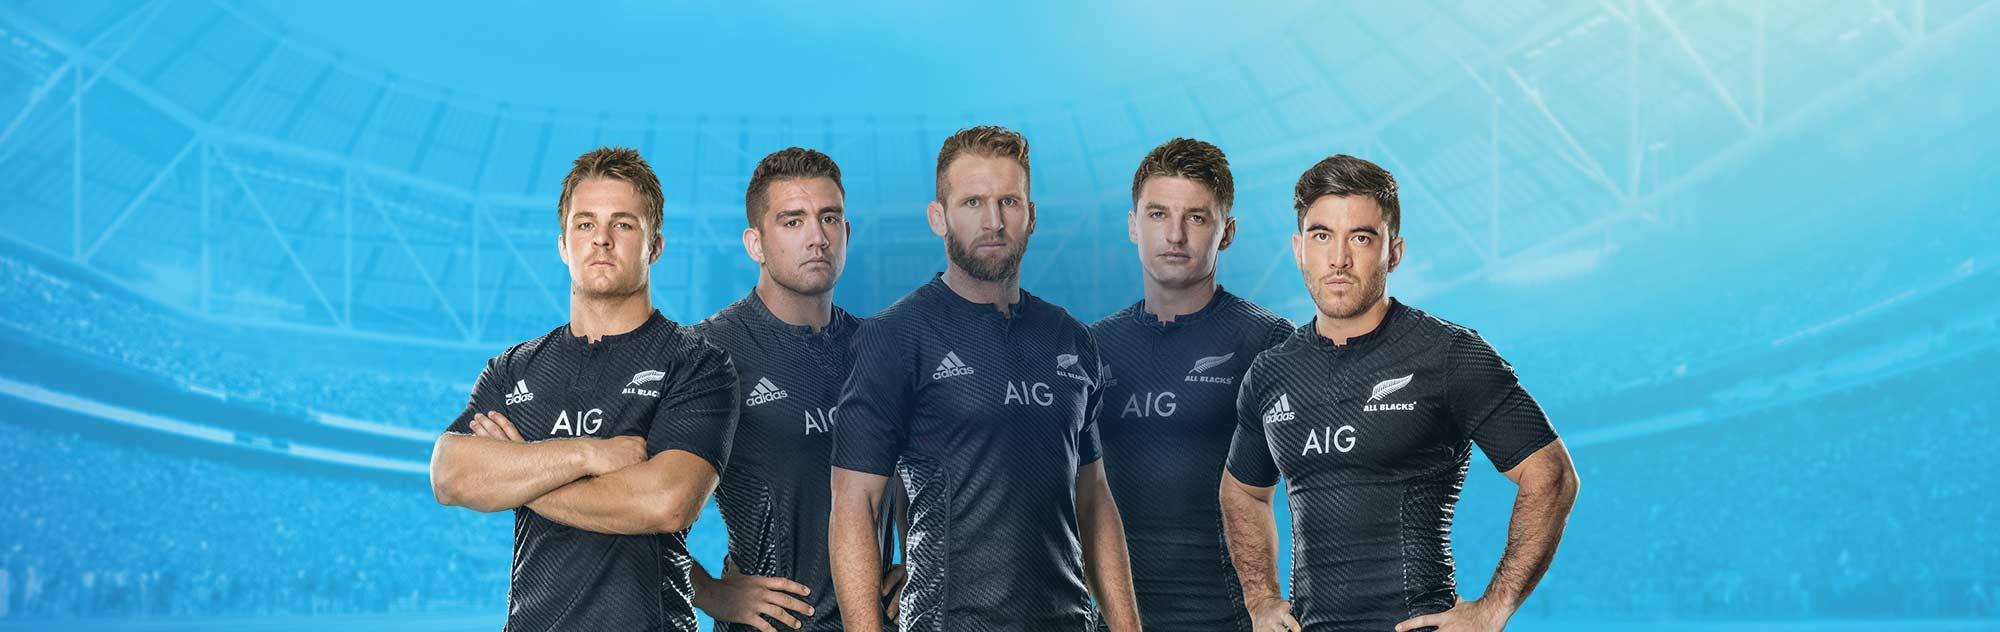 AIG & the All Blacks